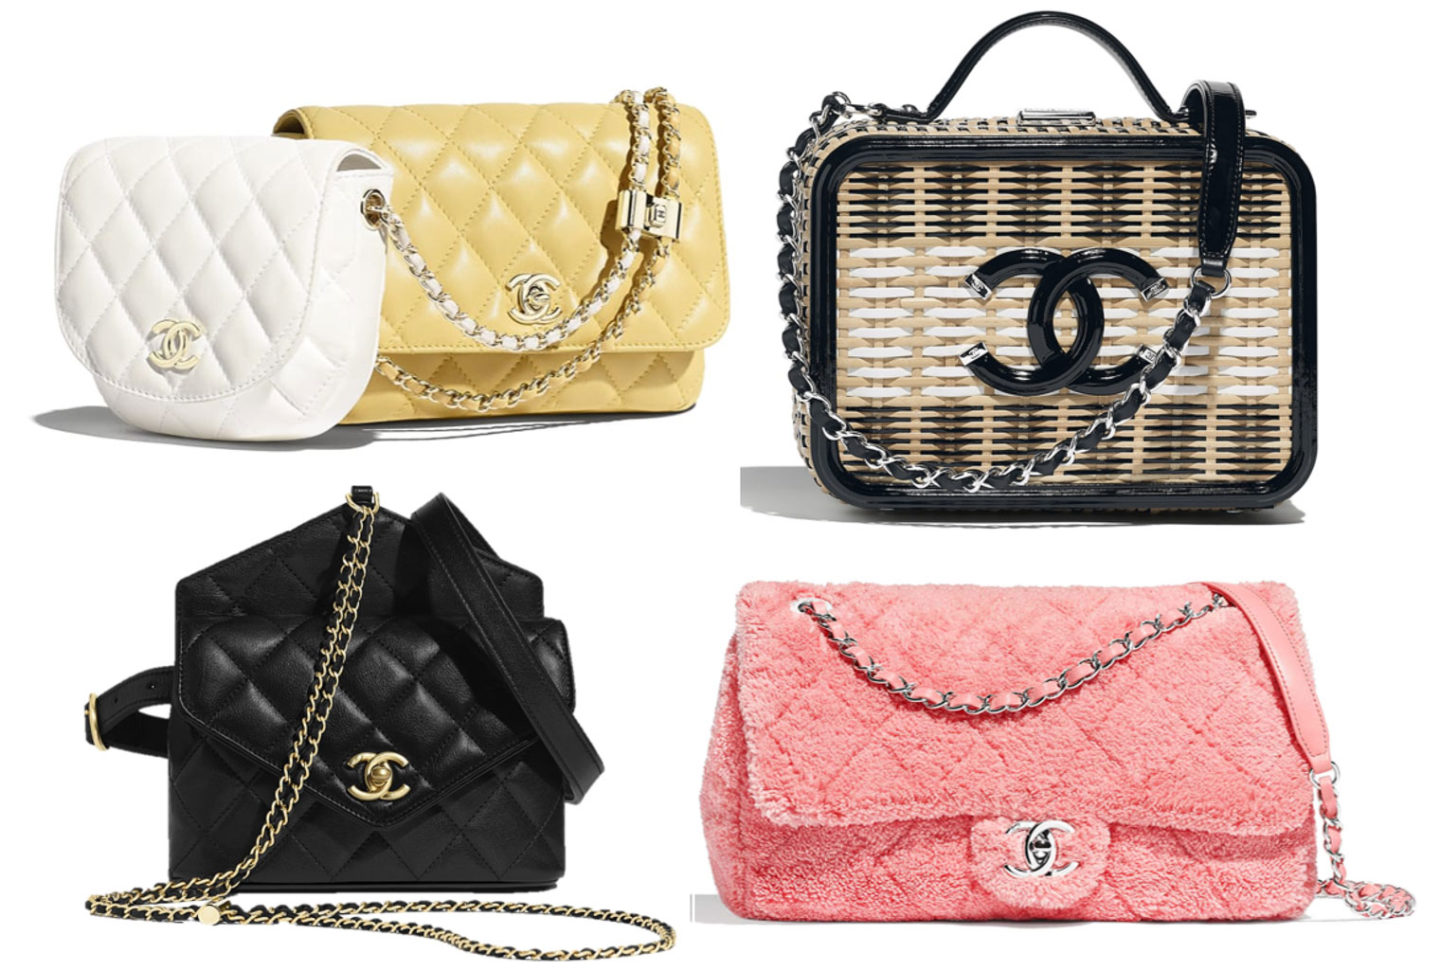 Top 10 Chanel handbags from summer collection 2019